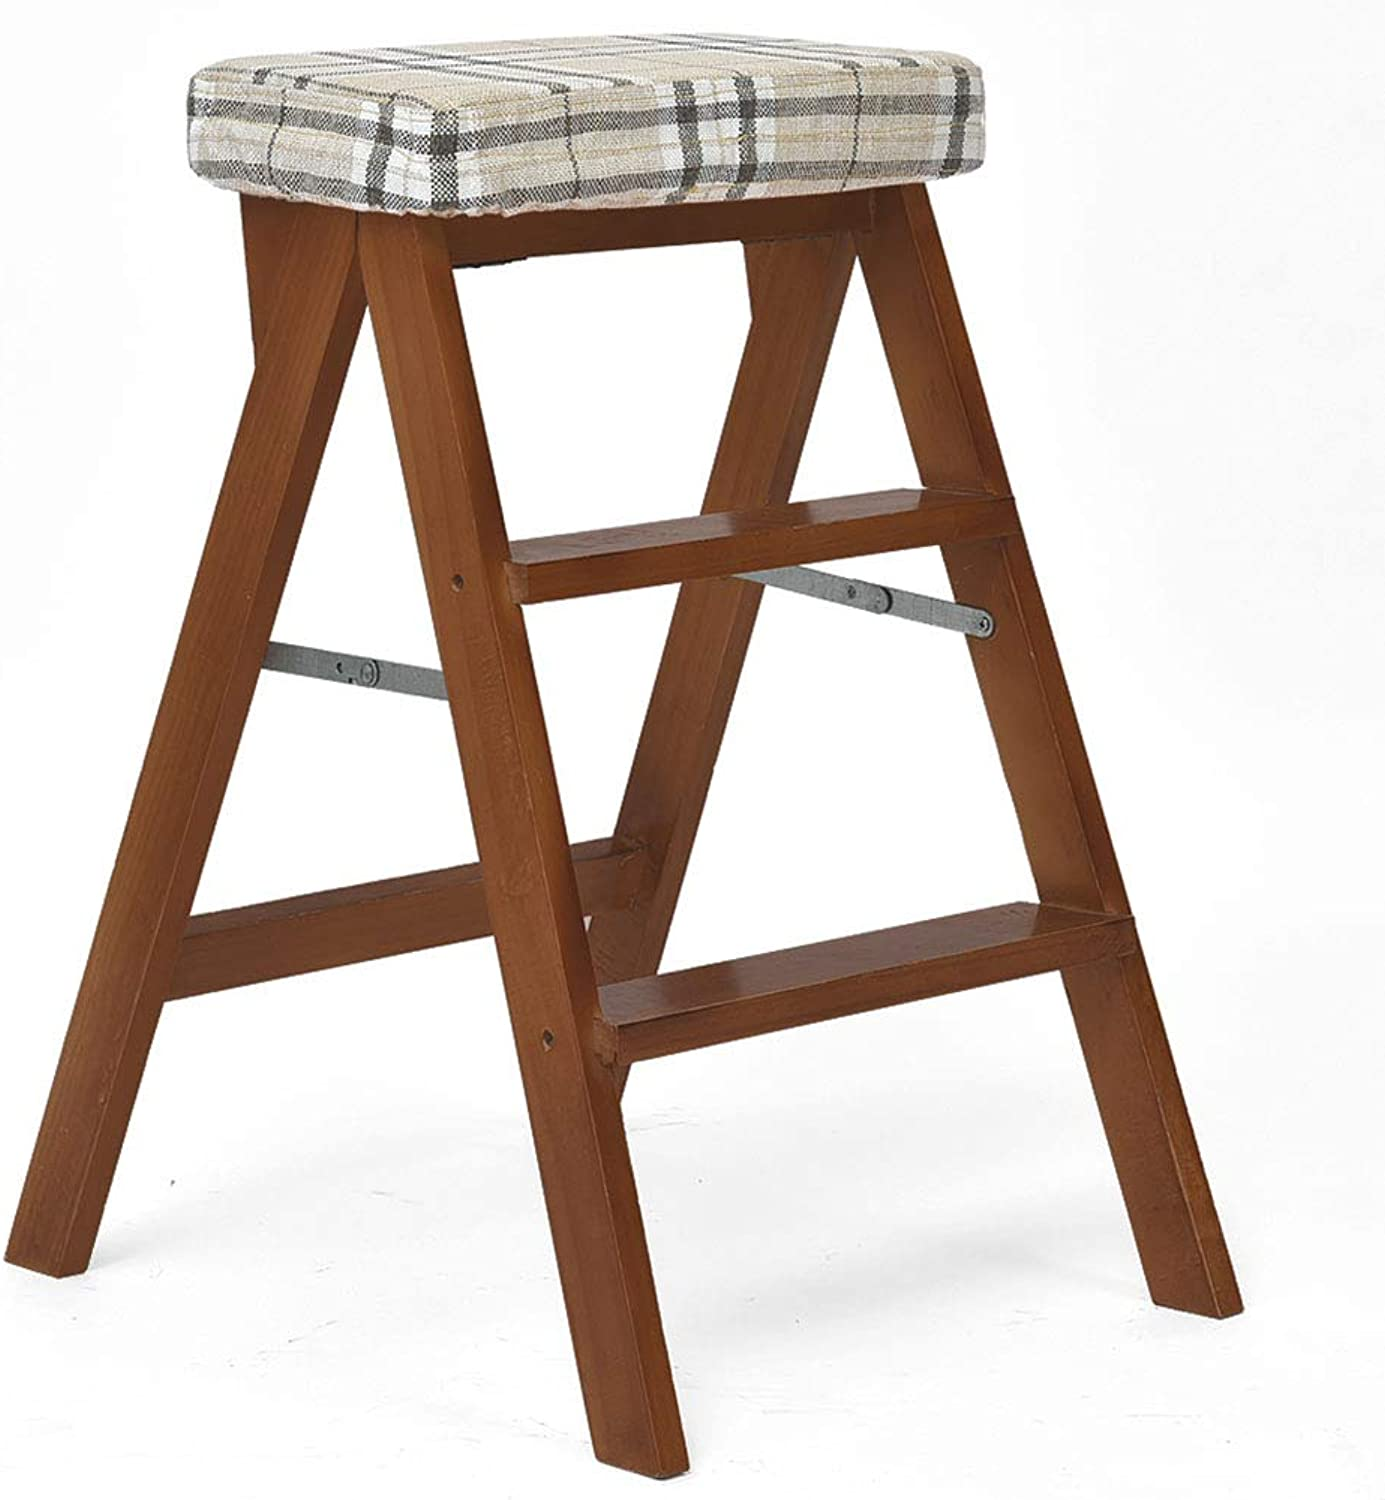 HAIPENG Wooden Step Ladder Stool with Sponge Cushion Safety Foldable Chair Simple Portable Multi Function Adult Home Kitchen, 3-Step (color   Brown4 , Size   42x54x65cm)